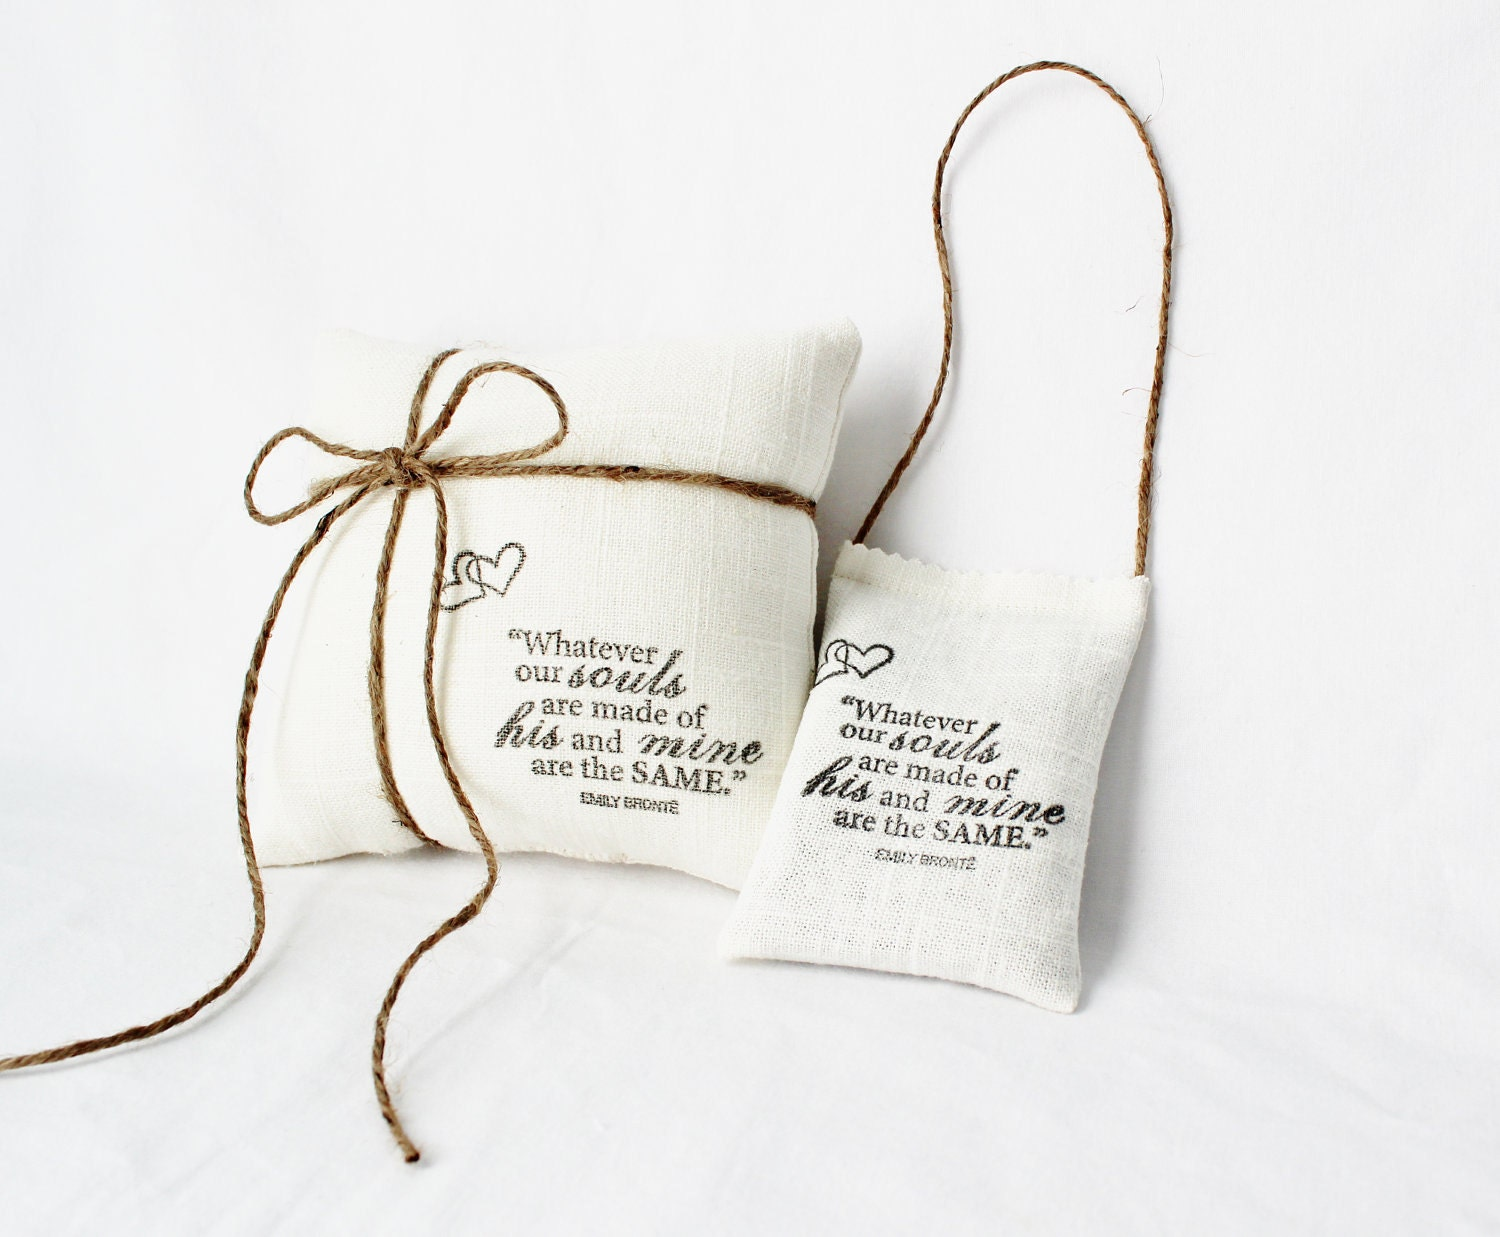 Linen Lavender Sachet, Emily Bronte, Lover's Quote, Luxurious